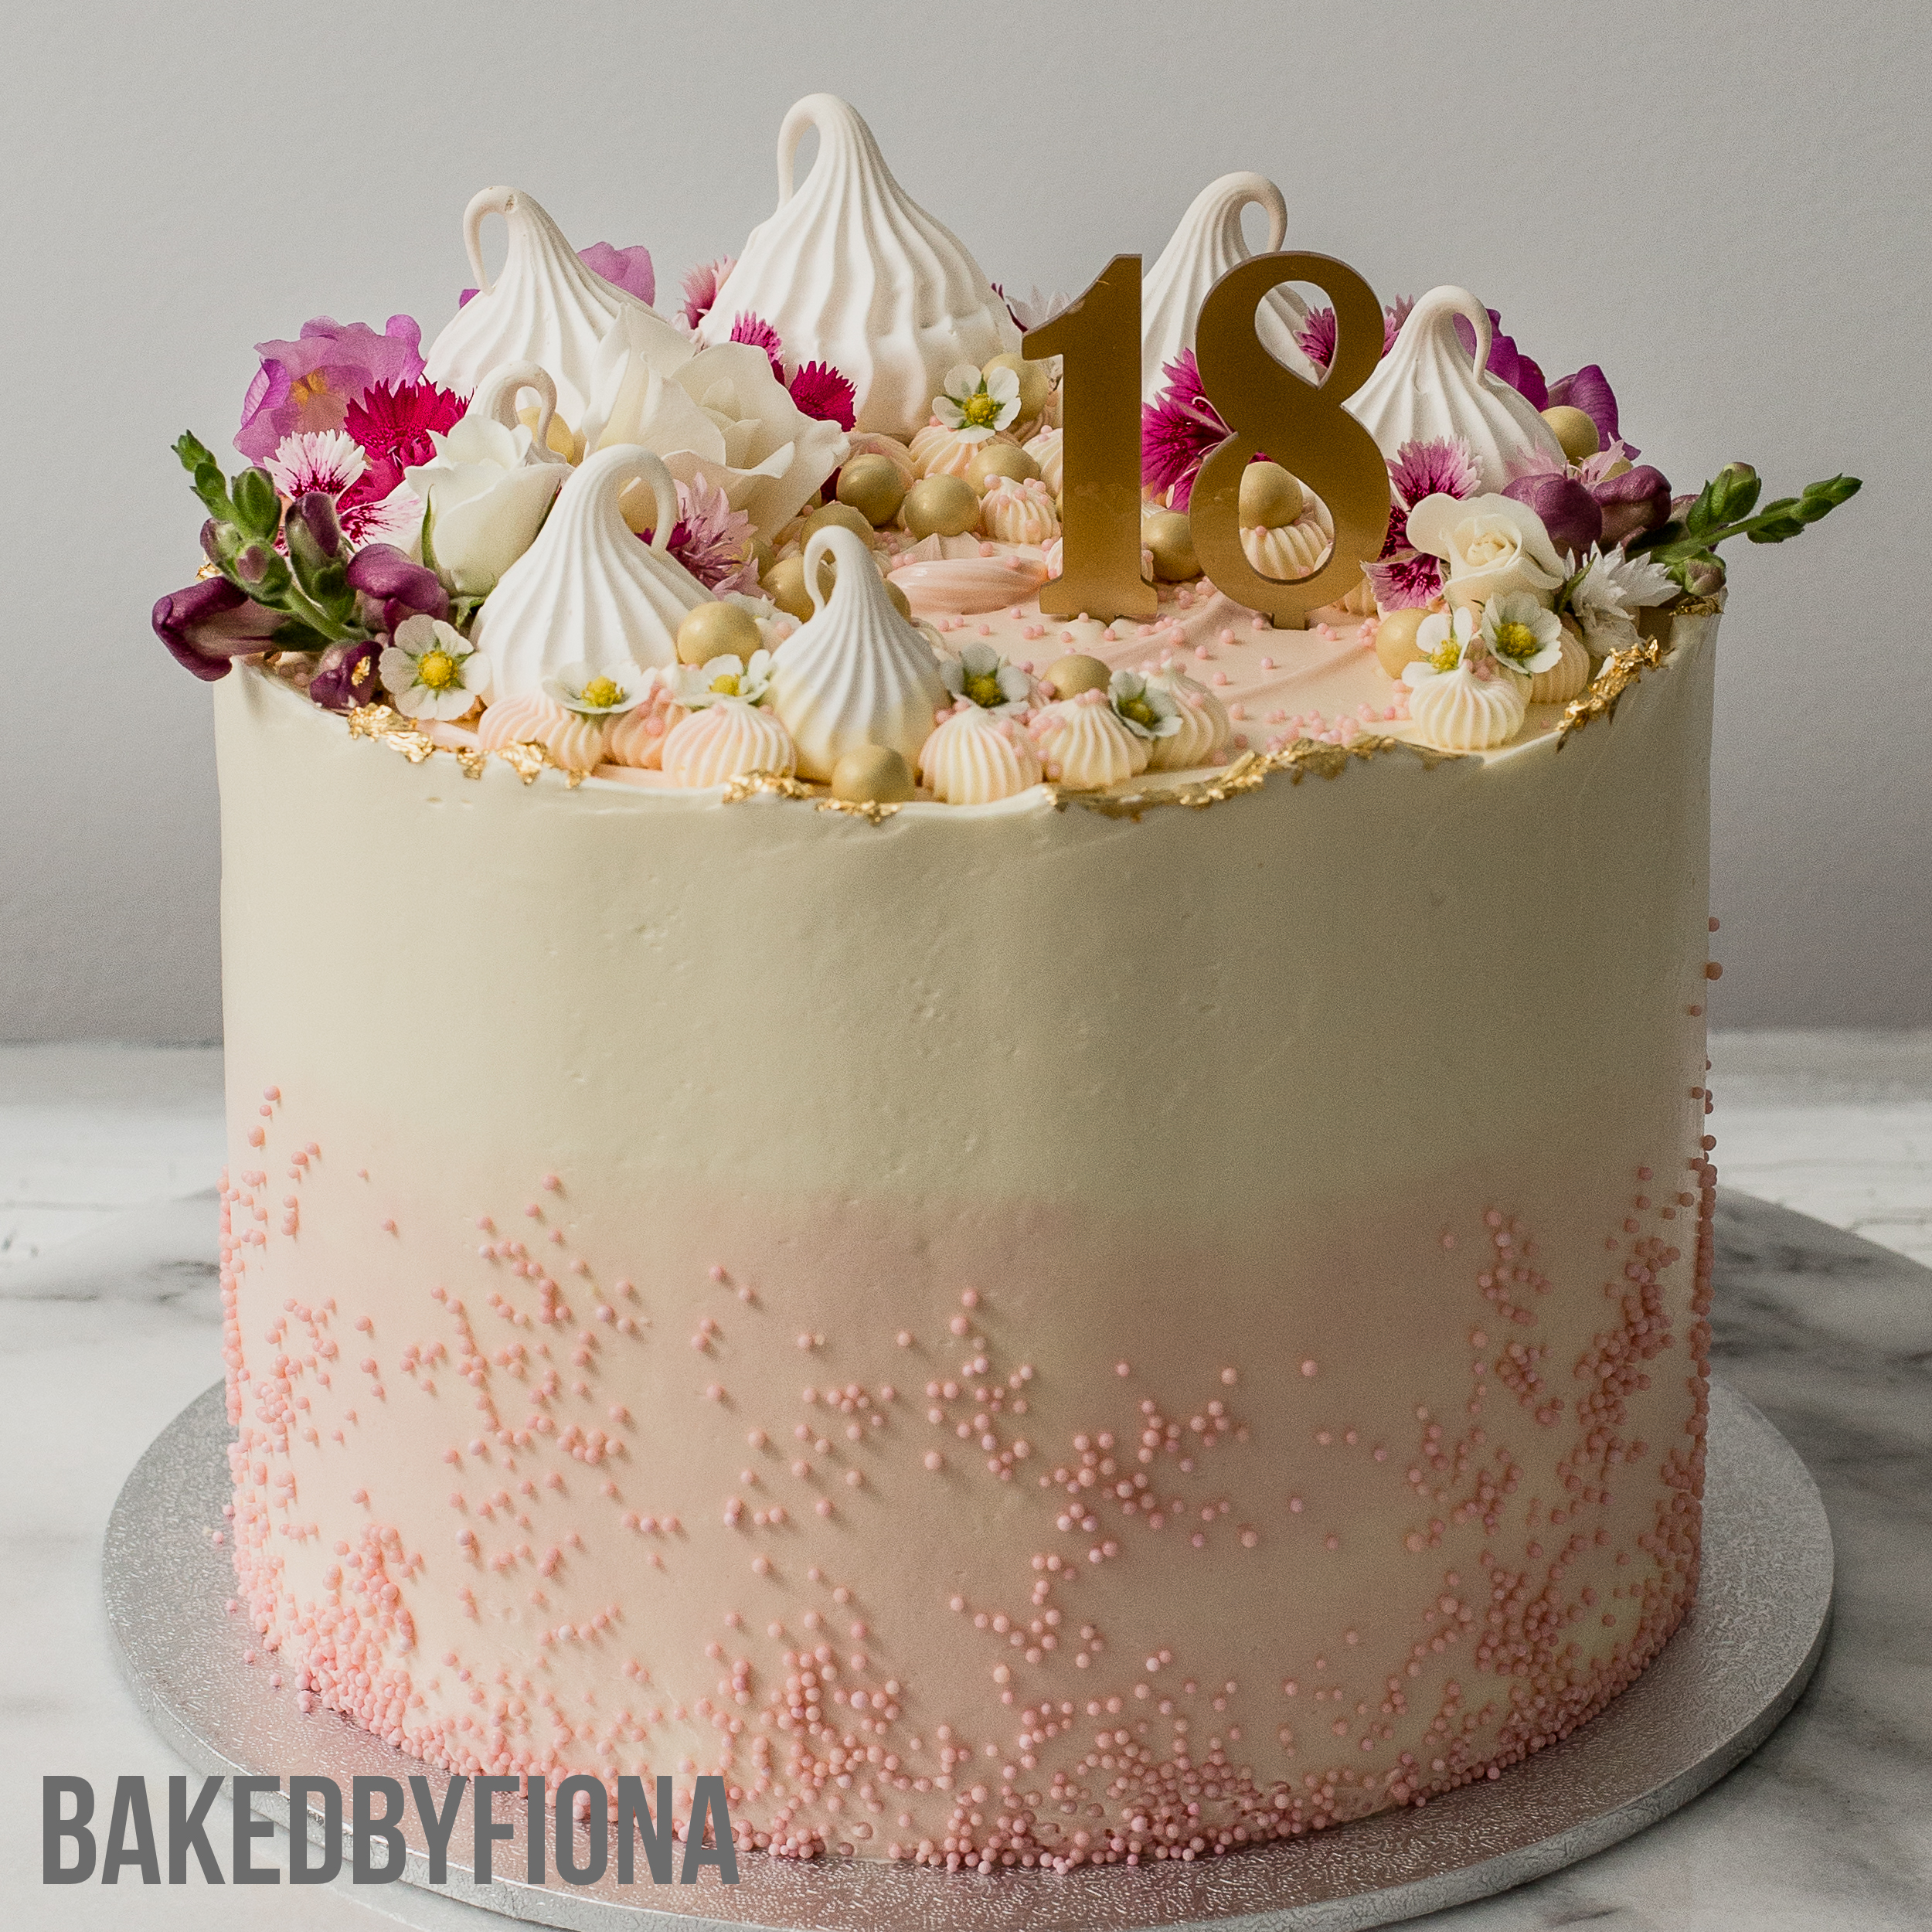 Sydney Cakes, Baked By Fiona 8in midi pink gold cake